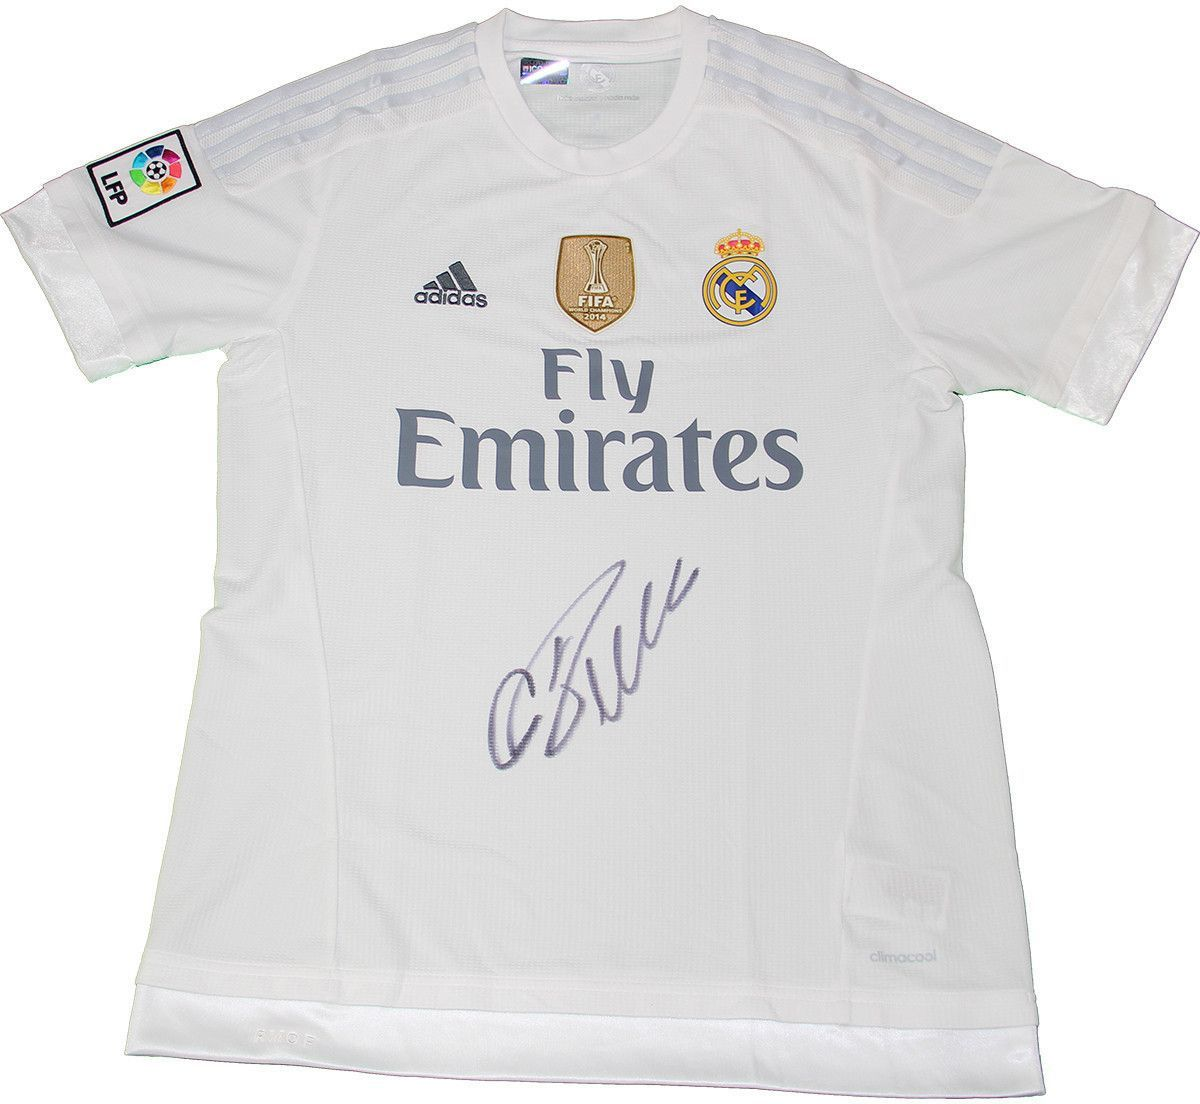 Cristiano Ronaldo Signed Real Madrid Home Jersey Signed On Front Icons Auth Products Ronaldo Jersey Cristiano Ronaldo Ronaldo